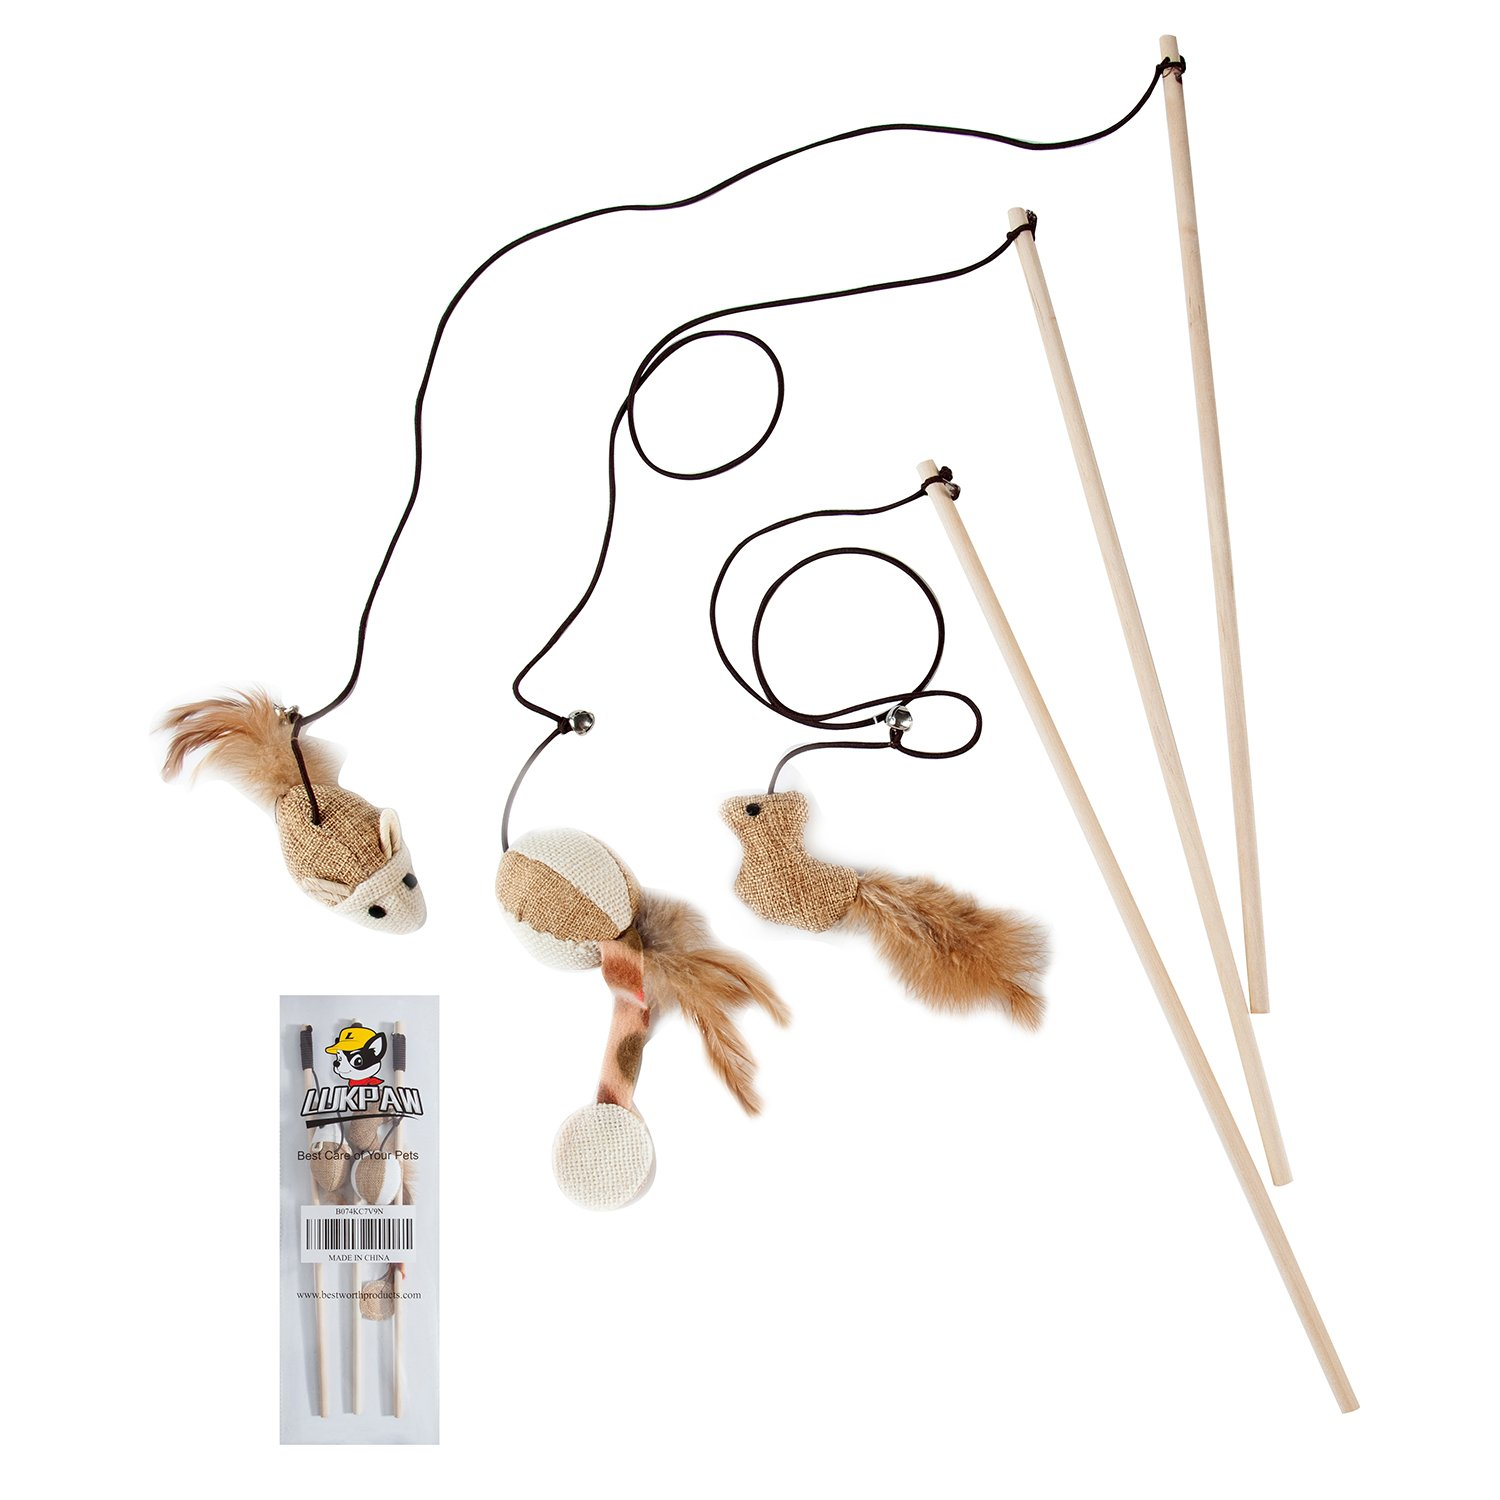 LukPaw Toy Cat Kitten Set of 3 Natural Sisal Wand Teasers with Mouse, Bell, Bird, Feather, Elastic String, and Sturdy Wood Rod